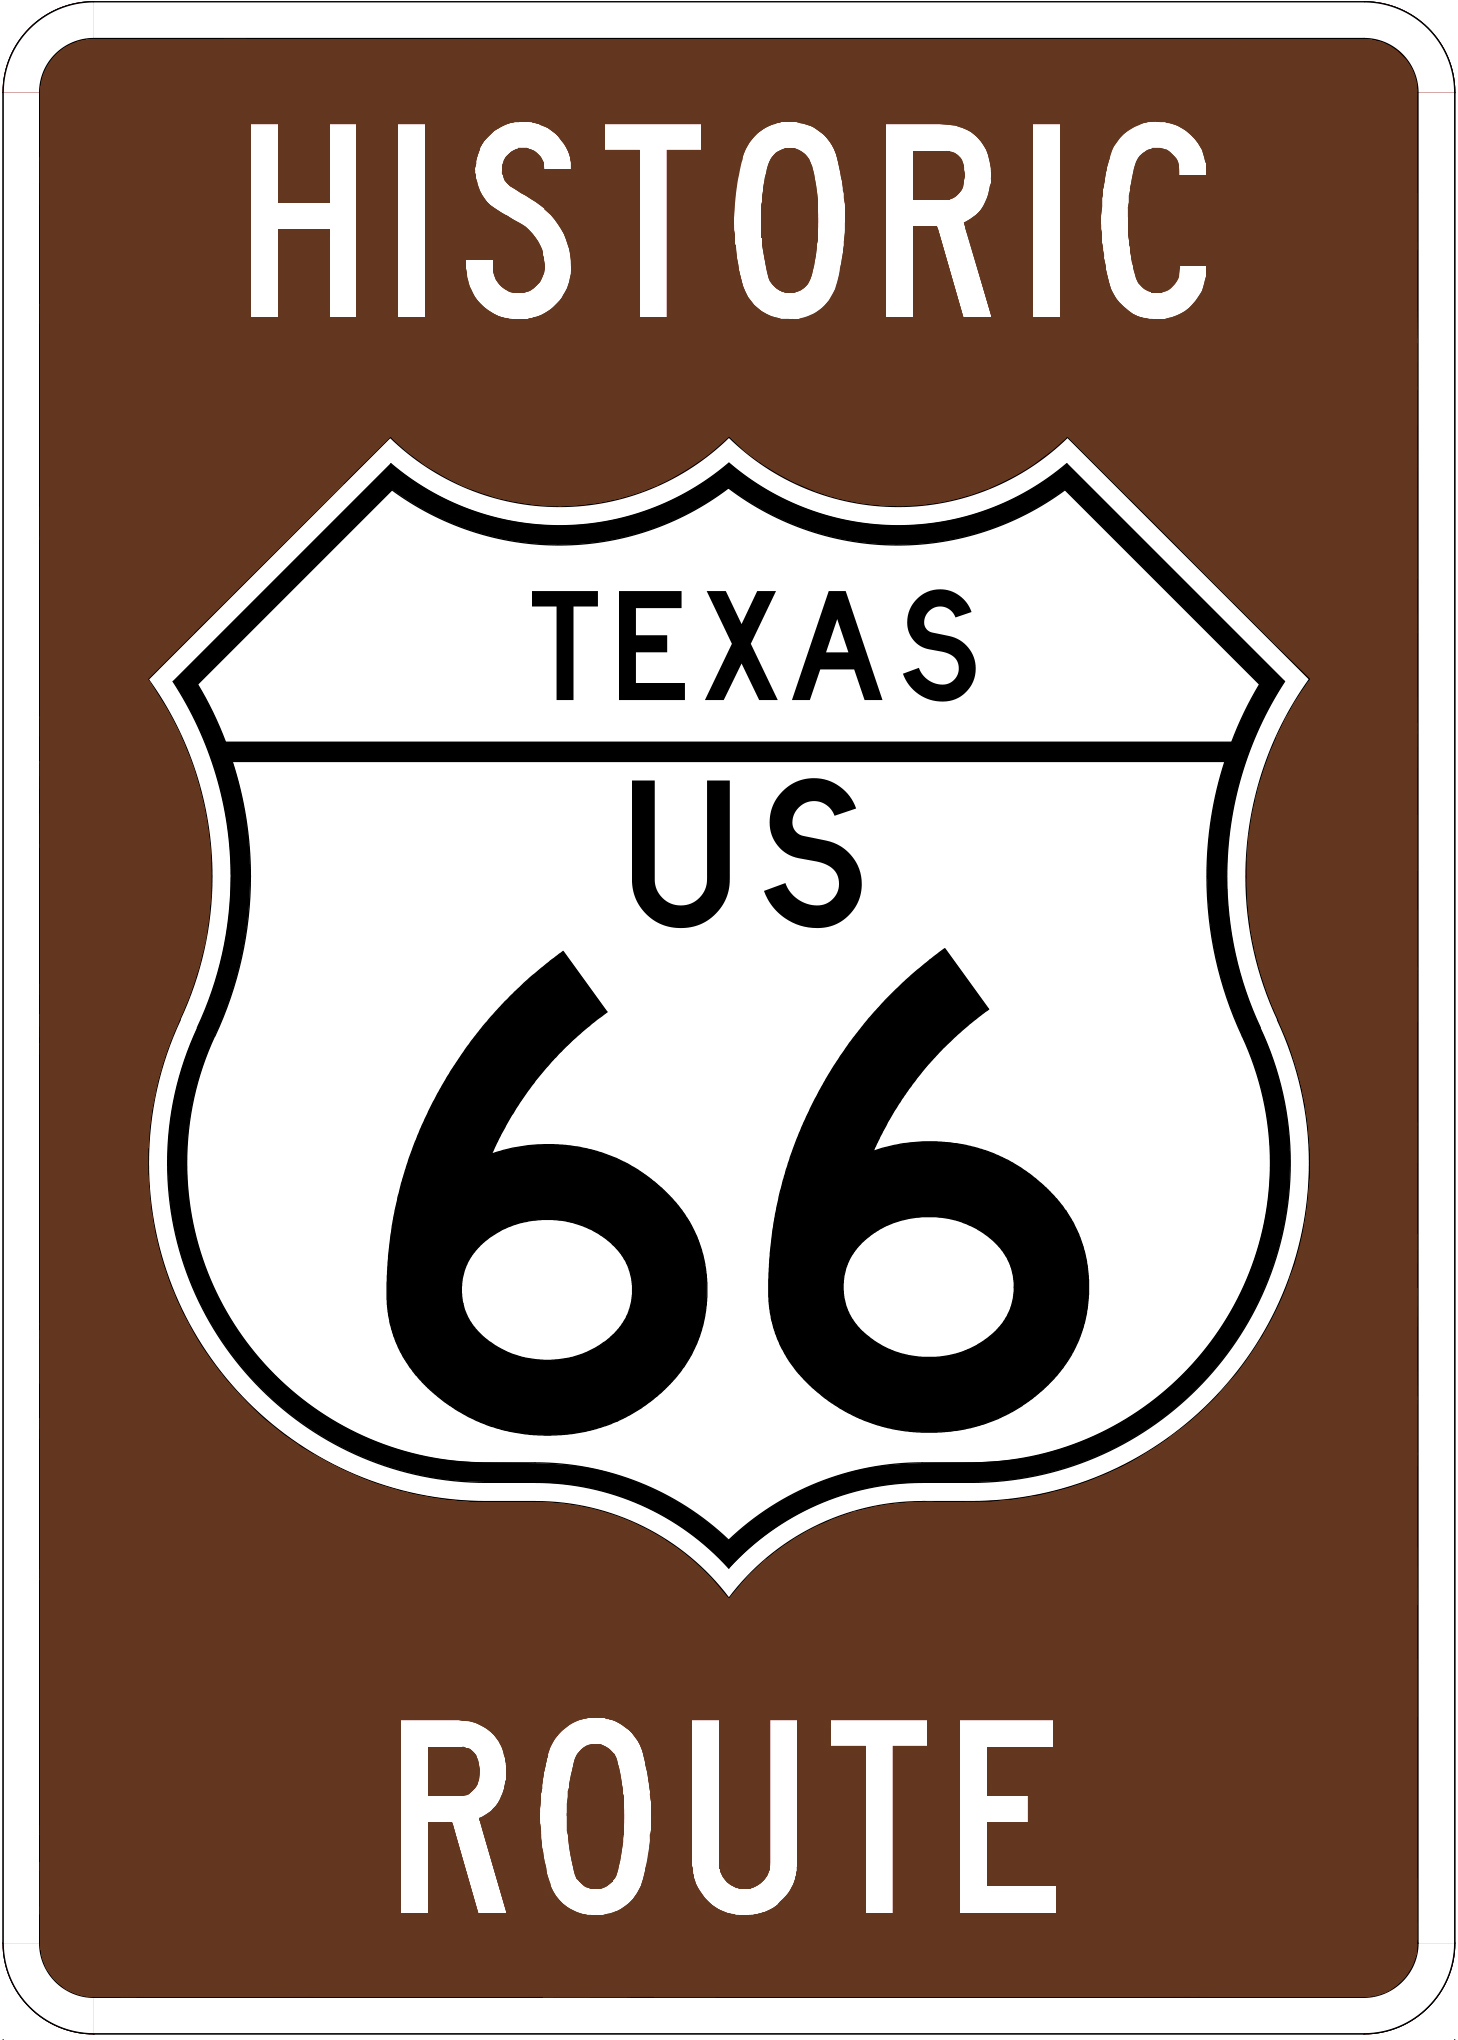 Route 66 | THC.Texas.gov - Texas Historical Commission